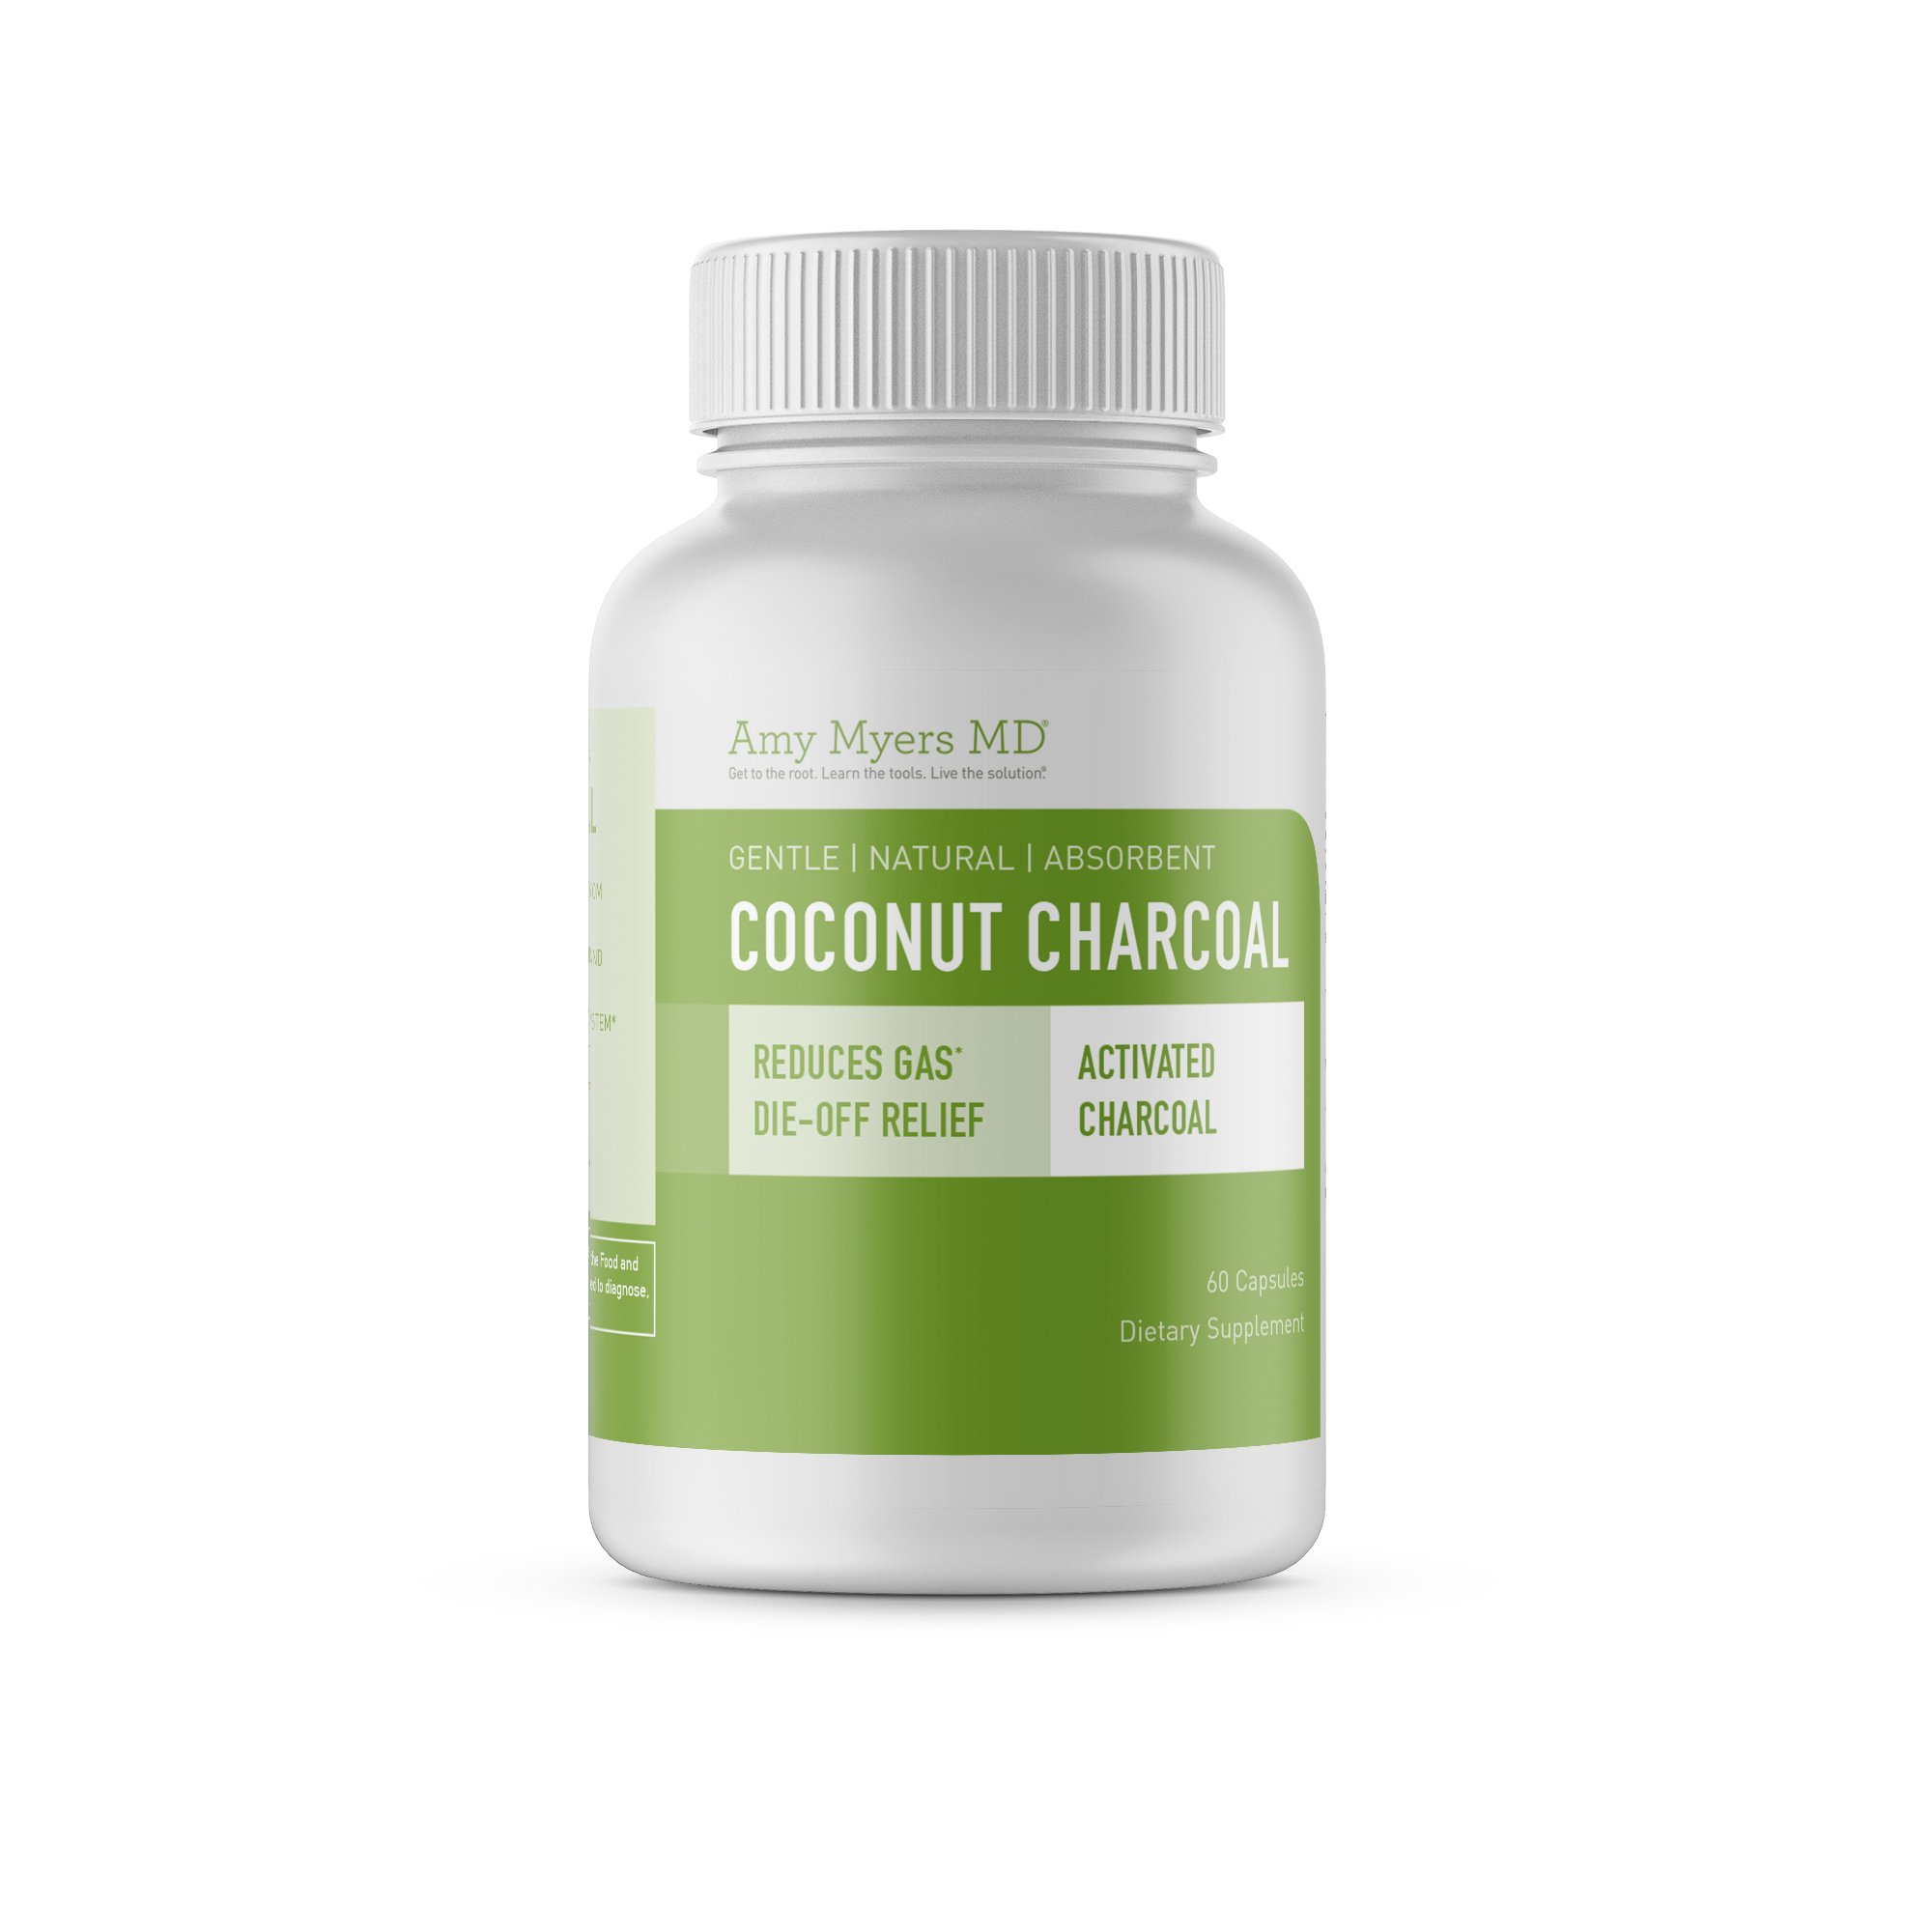 Coconut Charcoal Capsules from The Myers Way Protocol – Natural Activated Charcoal, Gas Reliever & Support For Affects Of Mold/Toxins – Dietary Supplement 60 Capsules, 30 Servings – From Dr. Amy Myers